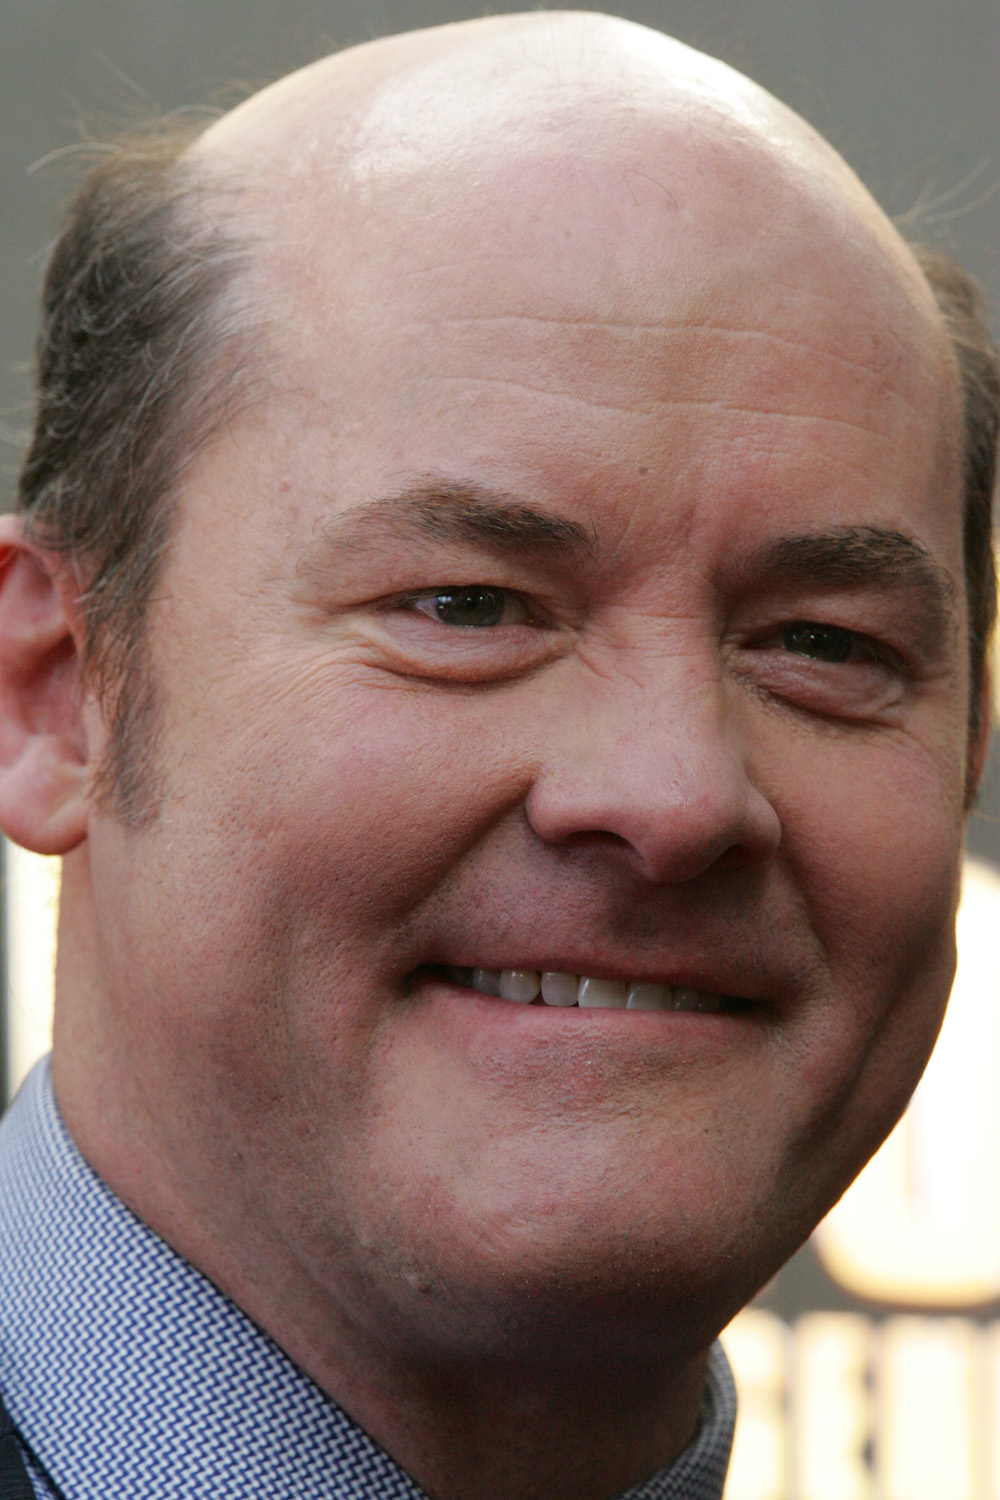 The 56-year old son of father (?) and mother(?) David Koechner in 2018 photo. David Koechner earned a  million dollar salary - leaving the net worth at 5 million in 2018